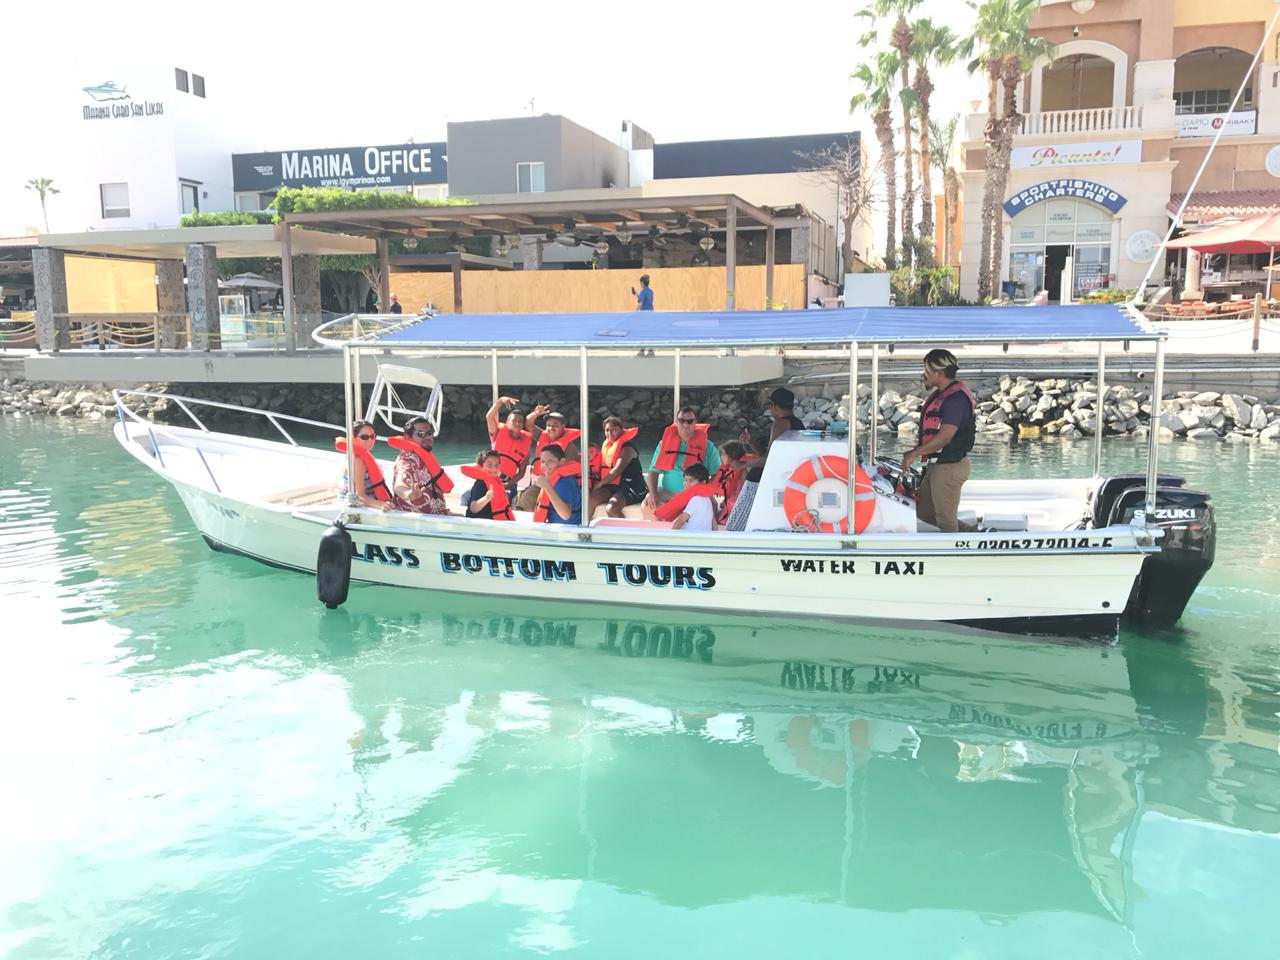 cabo shuttle services boat tour, transportation to cabo san lucas from airport, San Jose del cabo airport transportation, cabo transportation, los cabos transportation,